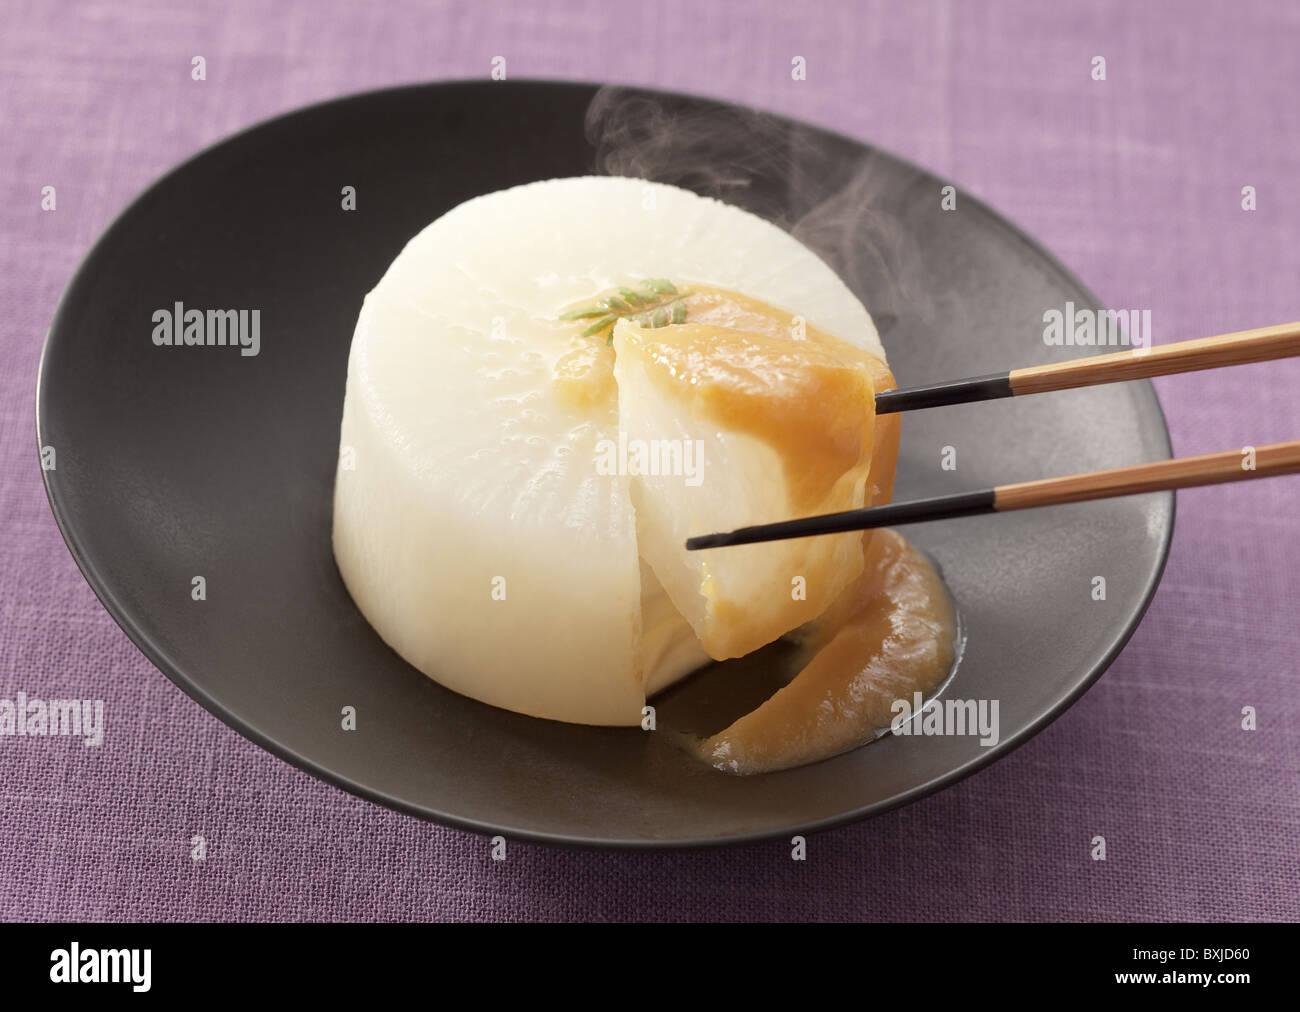 Simmered daikon radish with miso - Stock Image